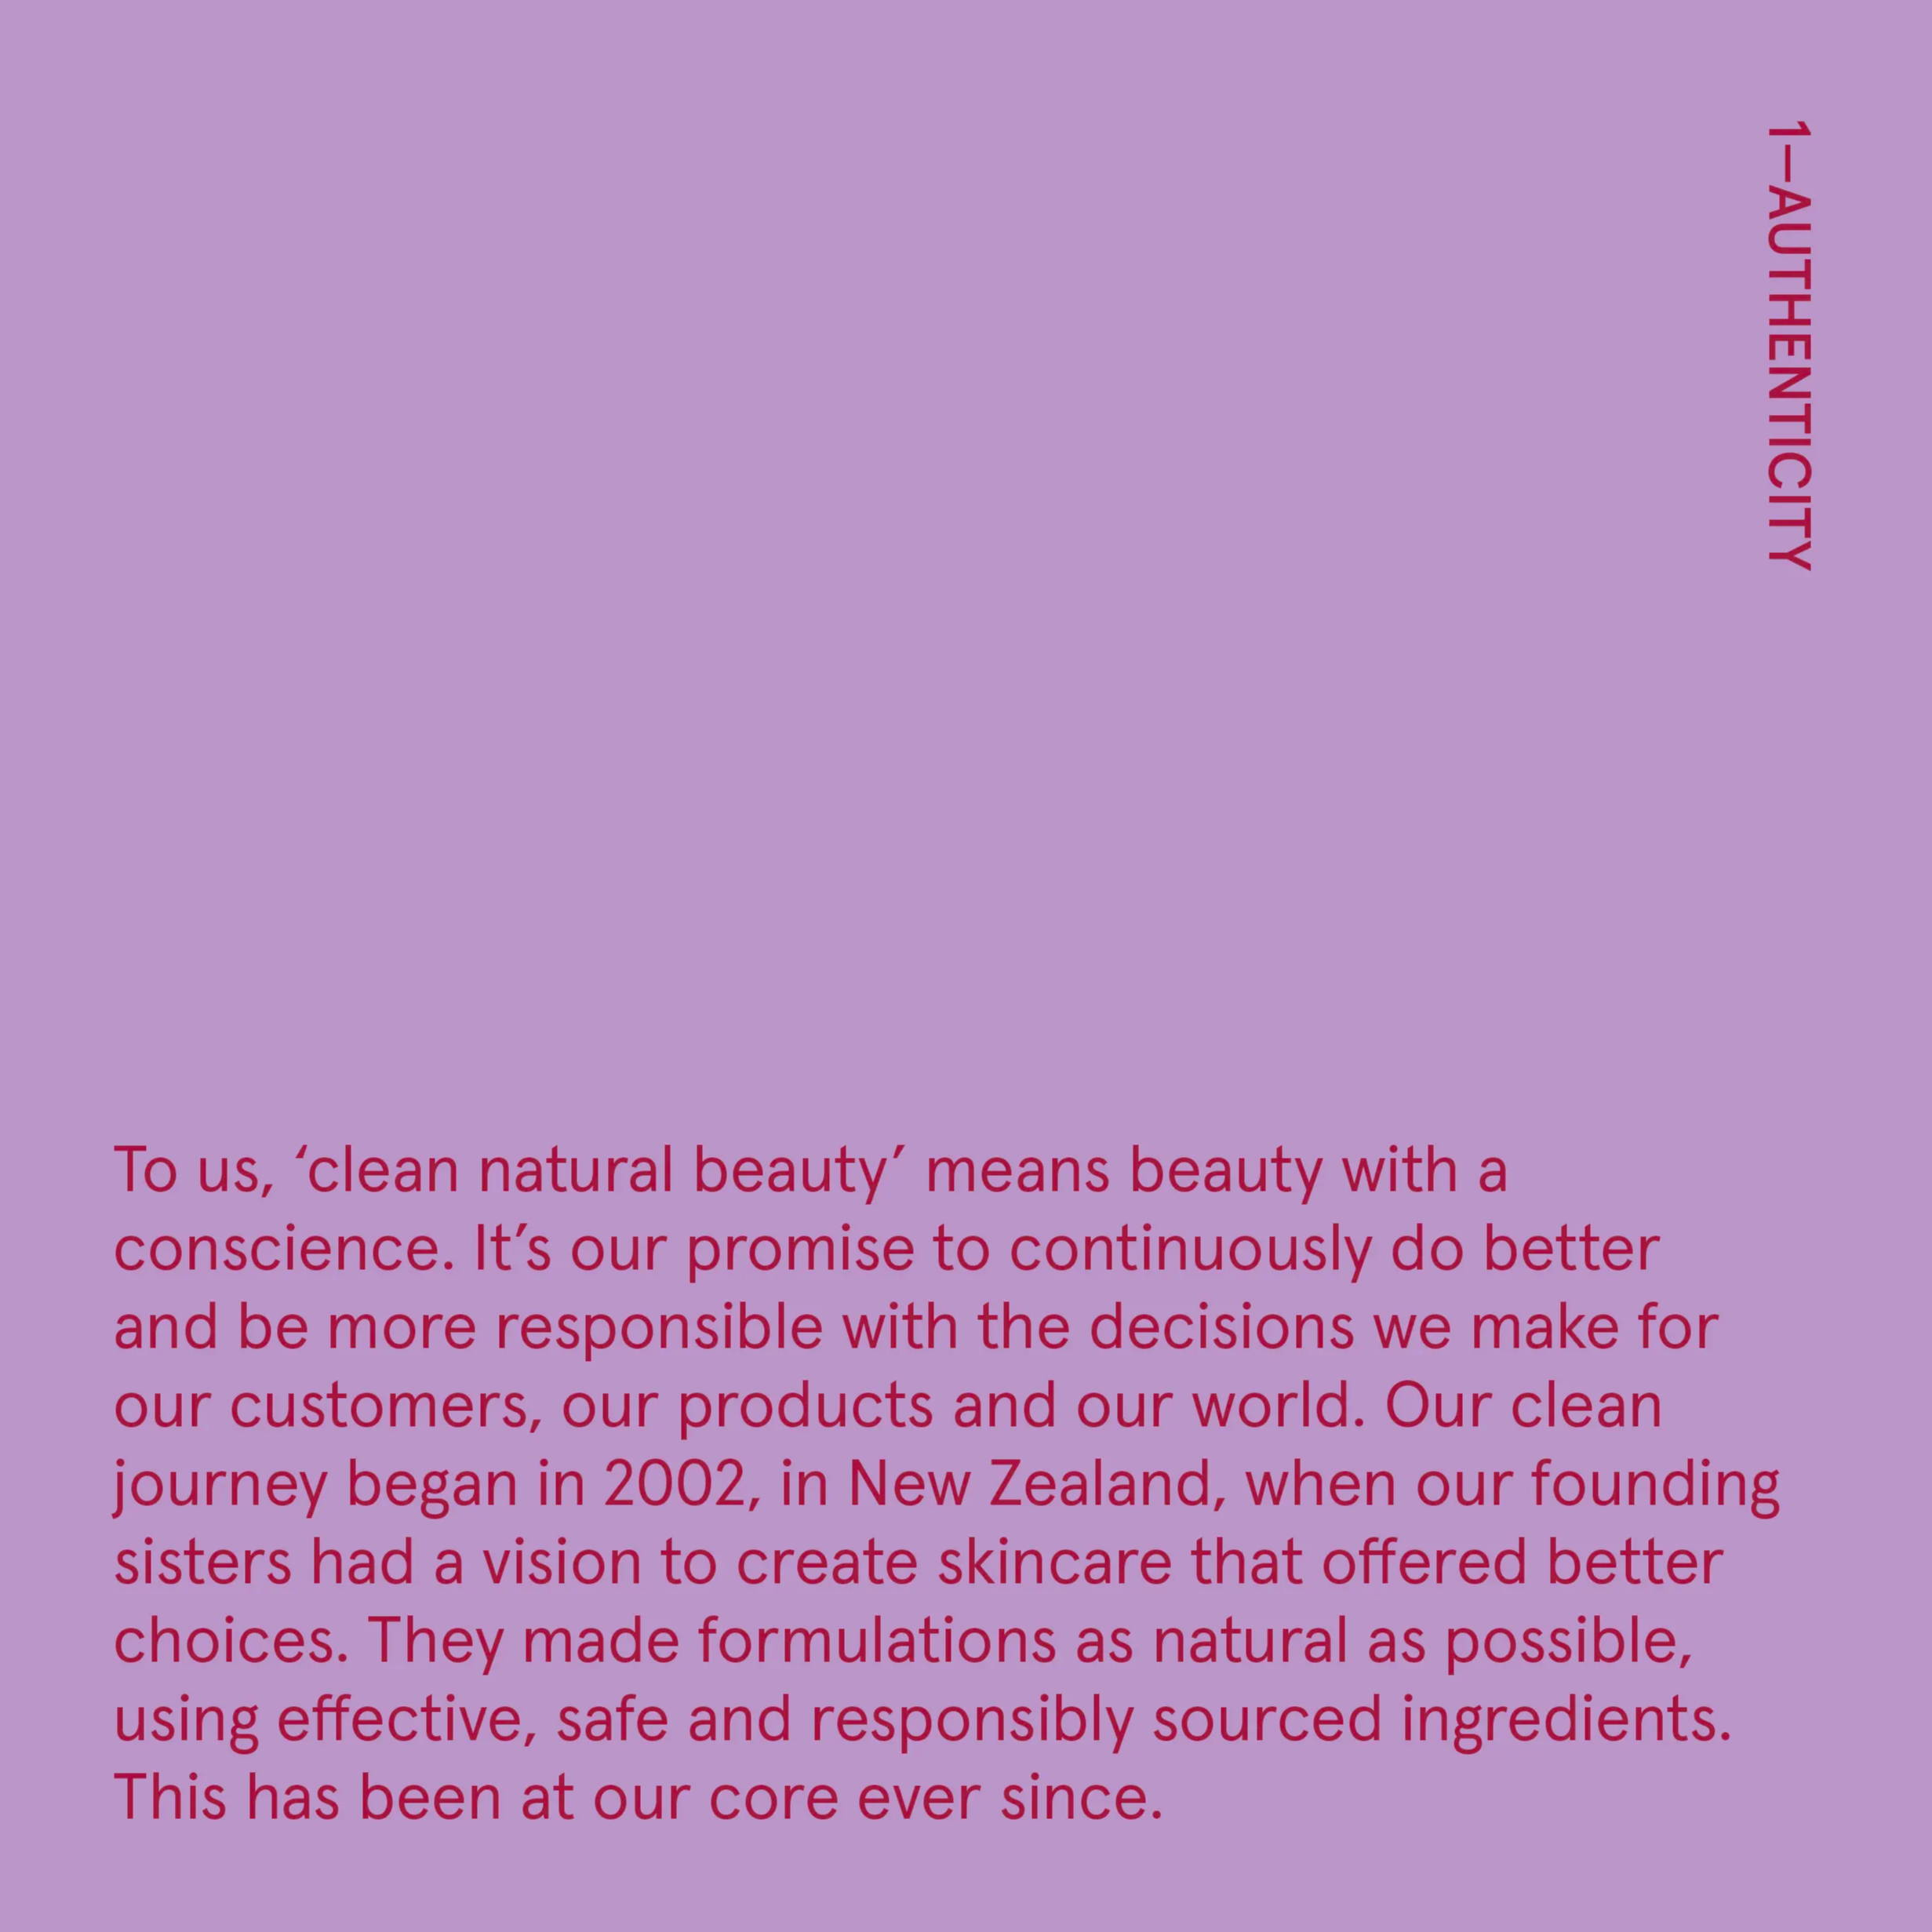 To us, 'clean natural beauty' means beauty with a conscience. It's our promise to continuously do better and be more responsible with the decisions we make for our customers, our products and our world.   Our clean journey began in 2002, in New Zealand, when our founding sisters had a vision to create skincare that offered better choices. They made formulations as natural as possible, using effective, safe and responsibly sourced ingredients. This has been at our core ever since.